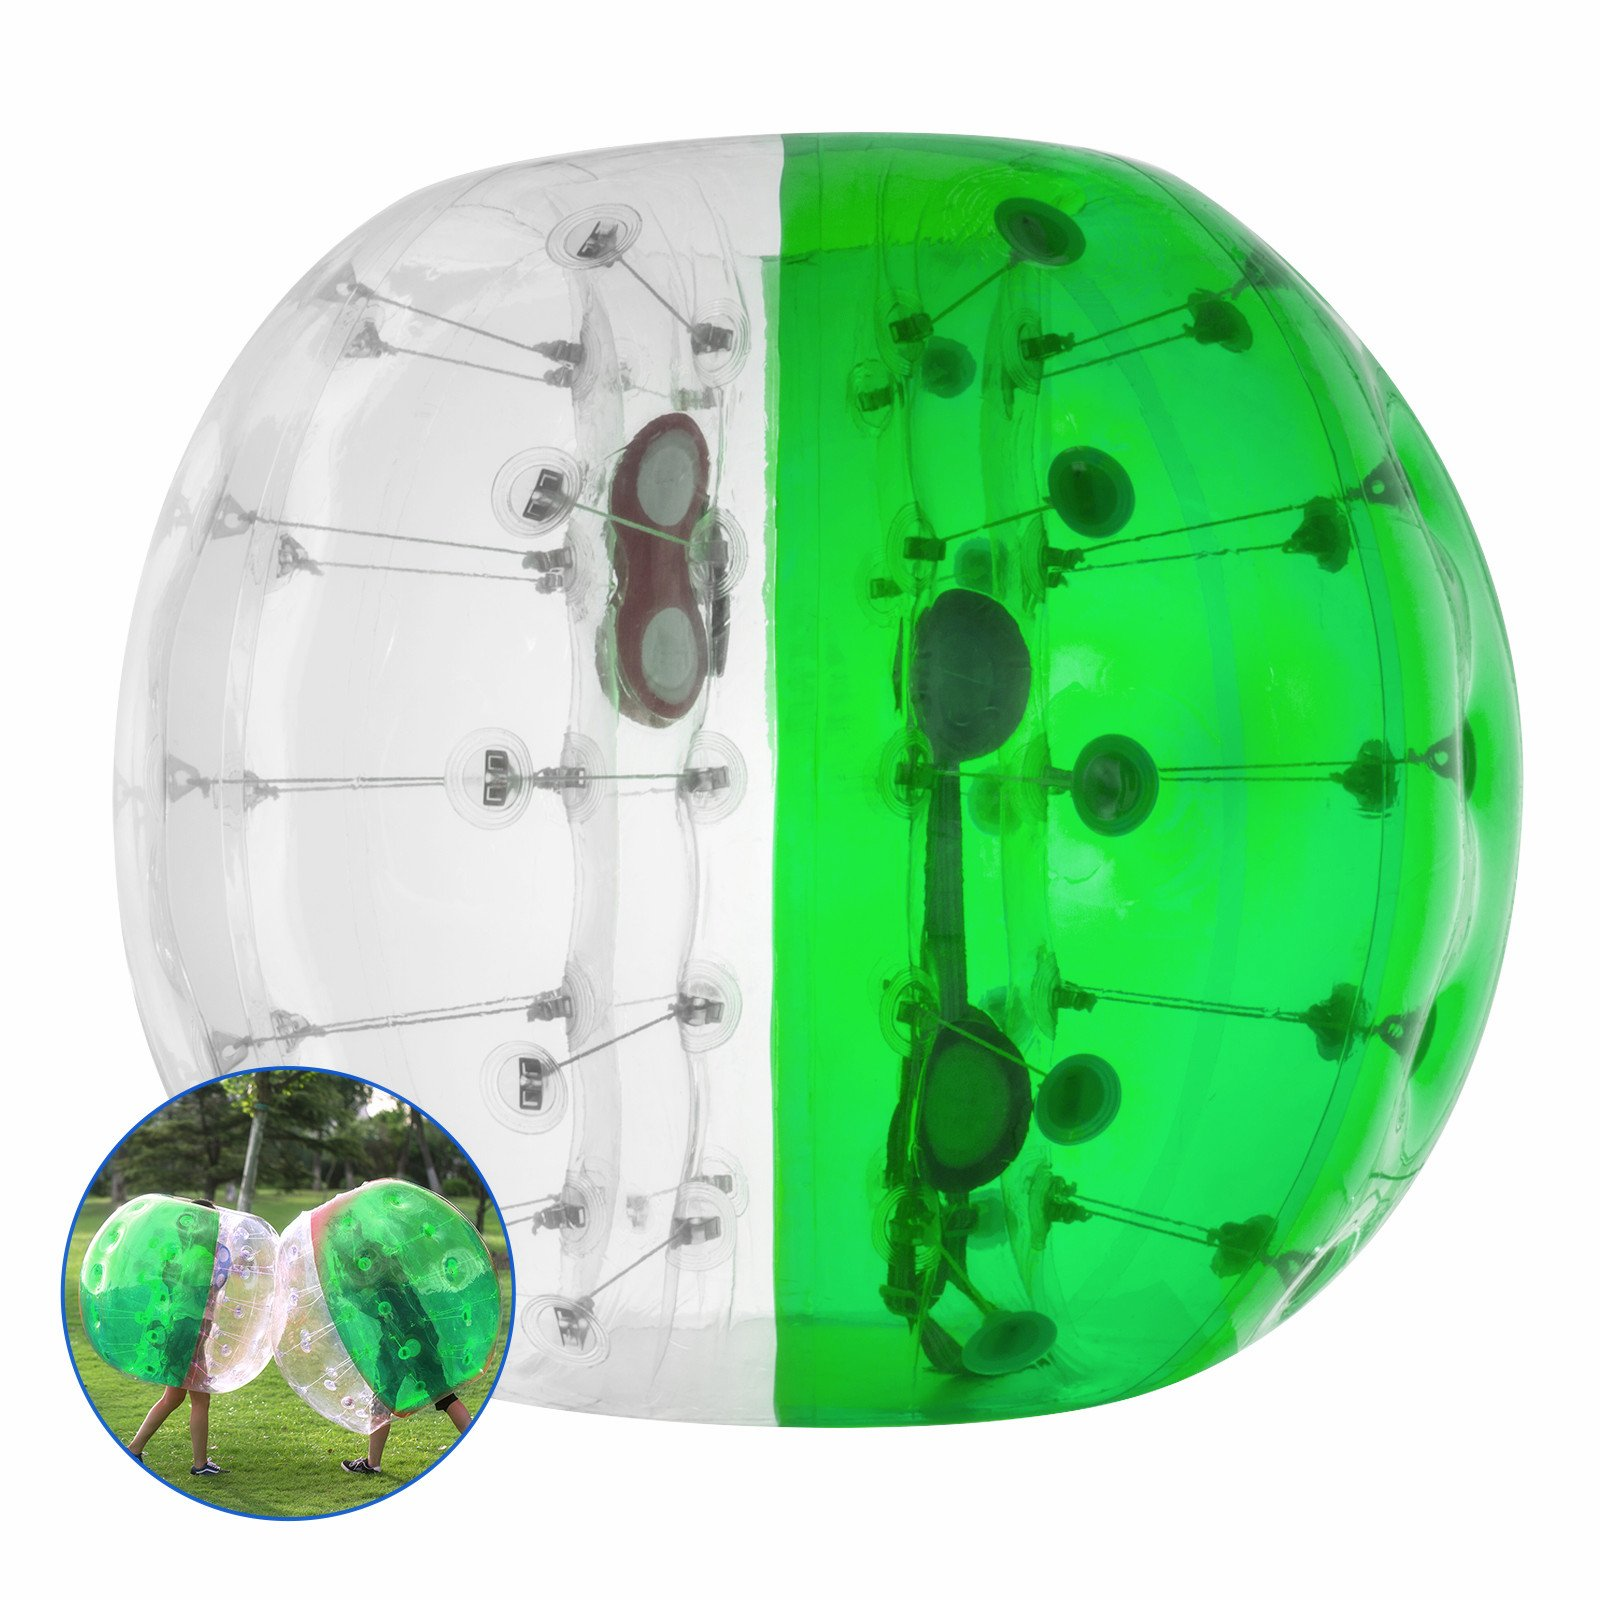 Popsport Inflatable Bumper Ball 4FT/5FT Bubble Soccer Ball 0.8mm Eco-Friendly PVC Zorb Ball Human Hamster Ball for Adults and Kids (5FT Half Green)